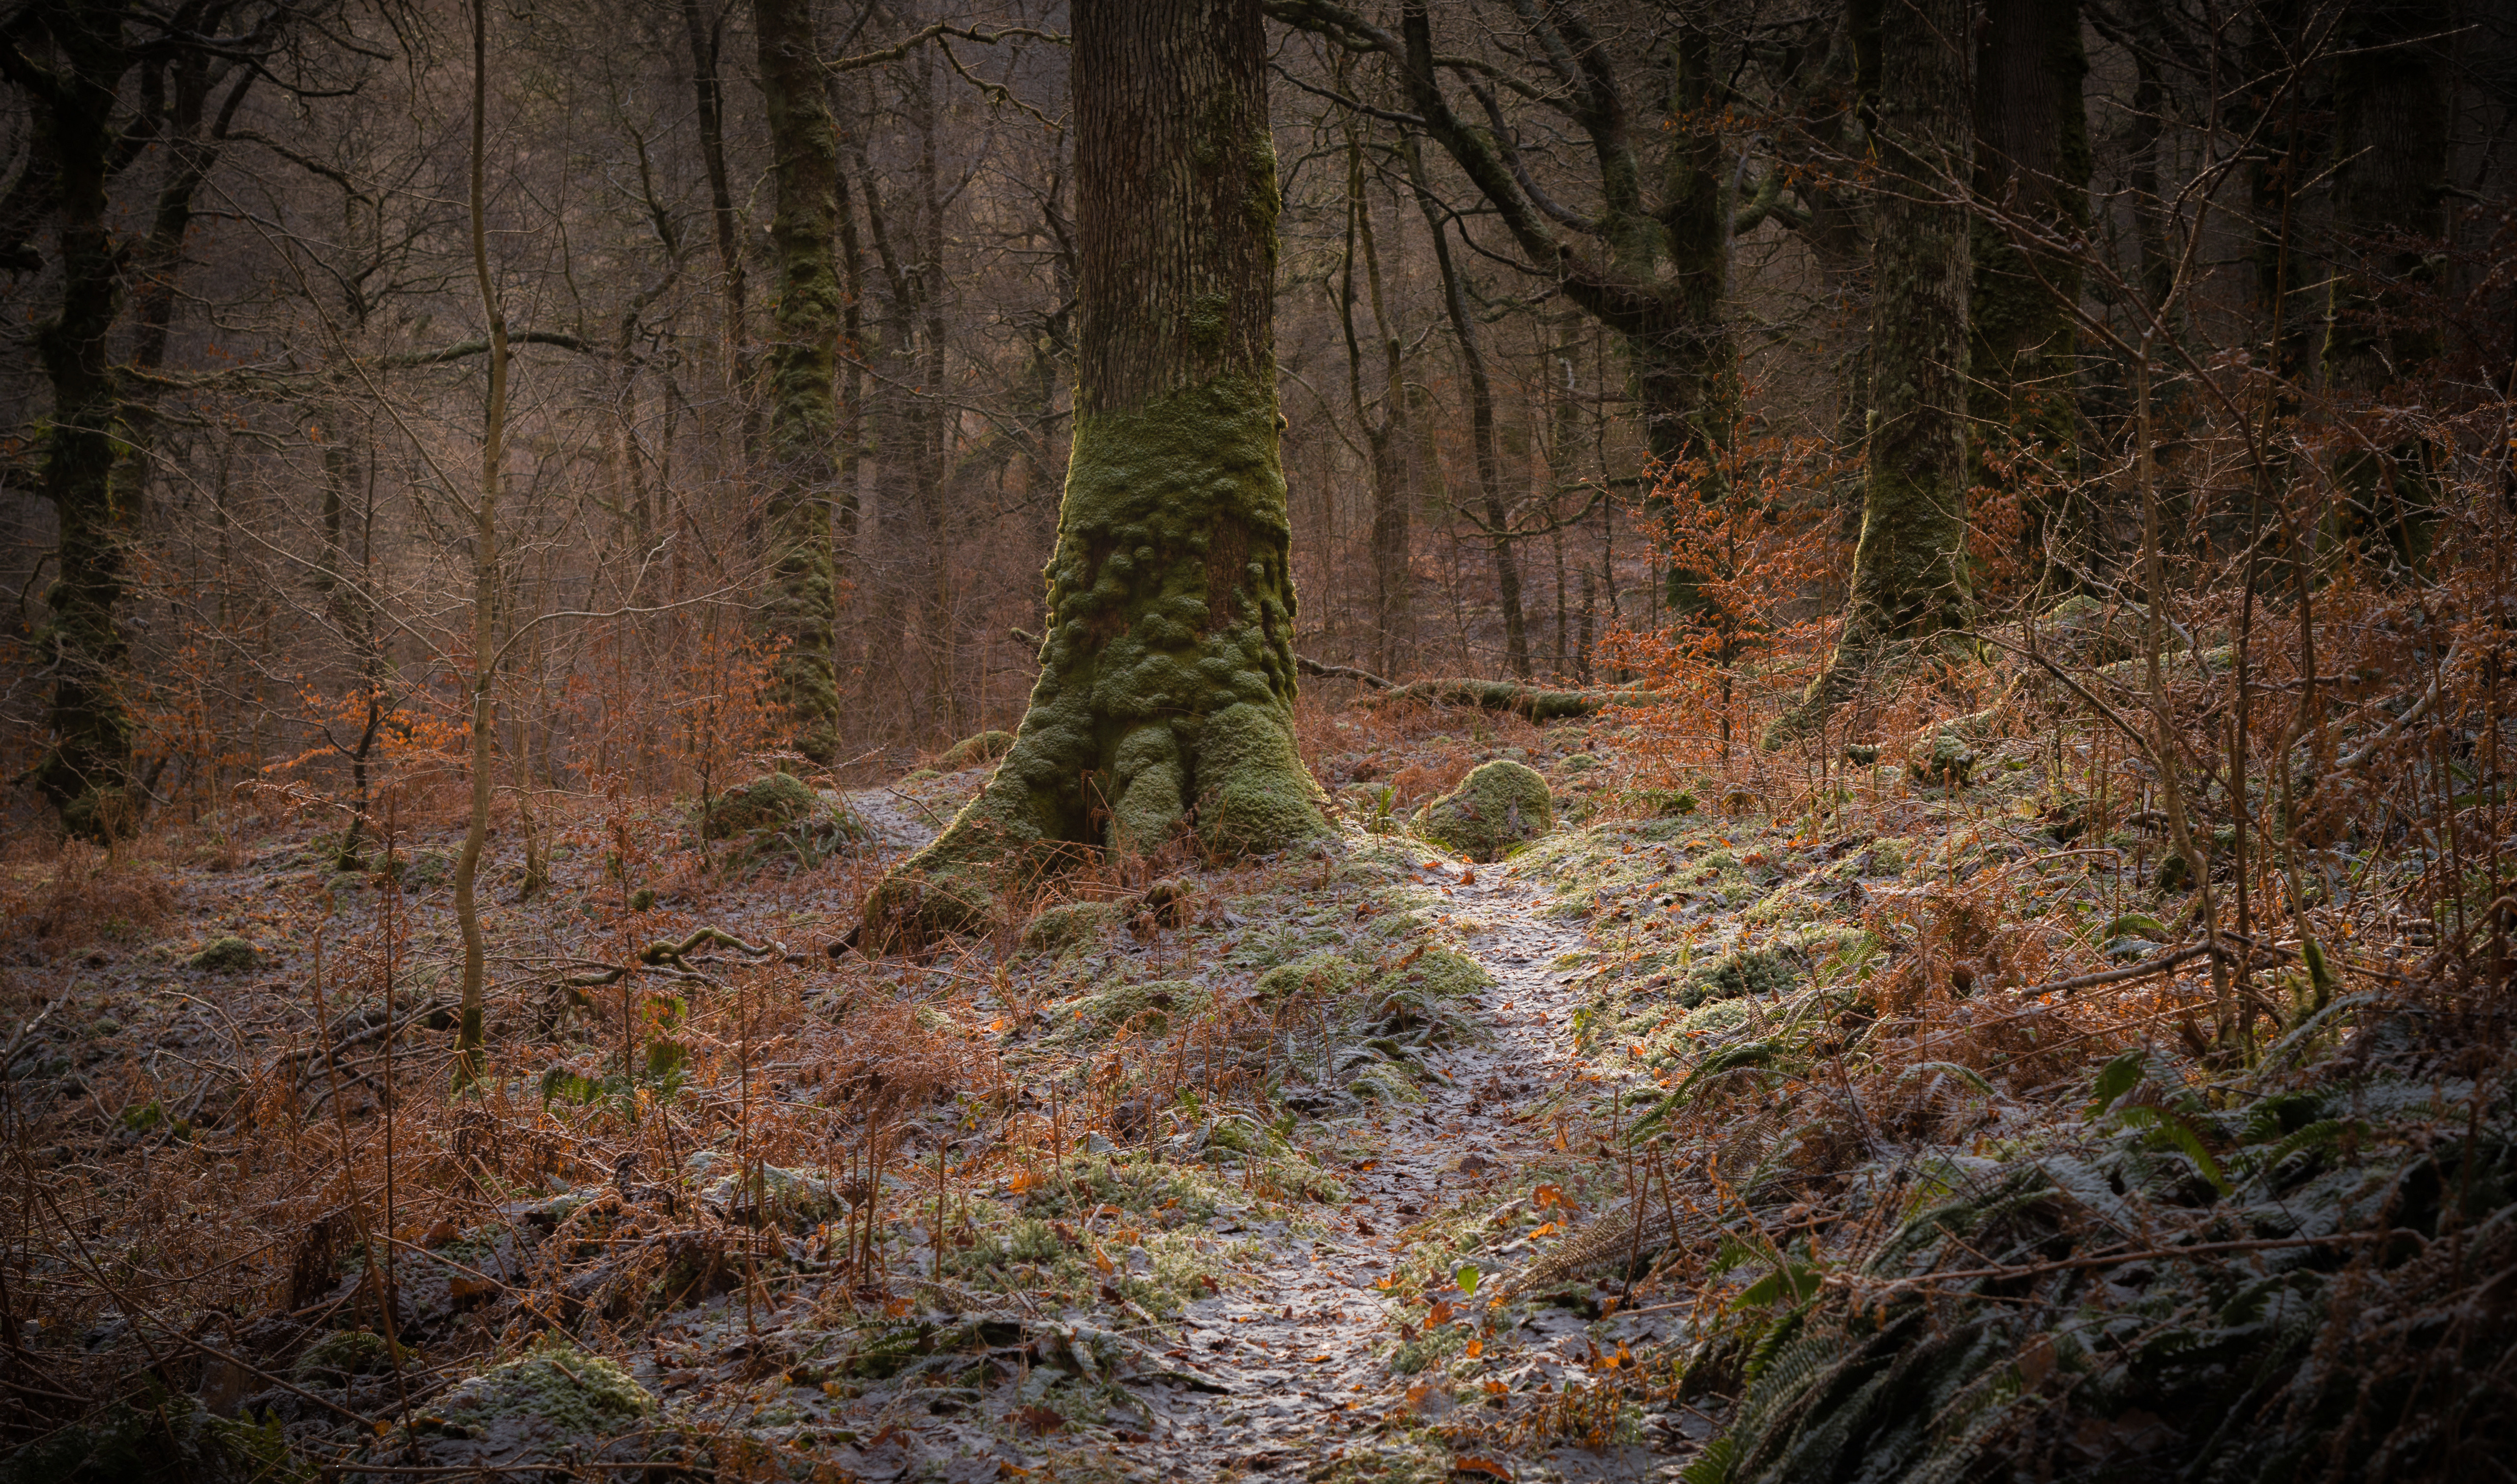 Images Scotland Frost Galloway Nature forest Moss Trees 5120x3019 Forests